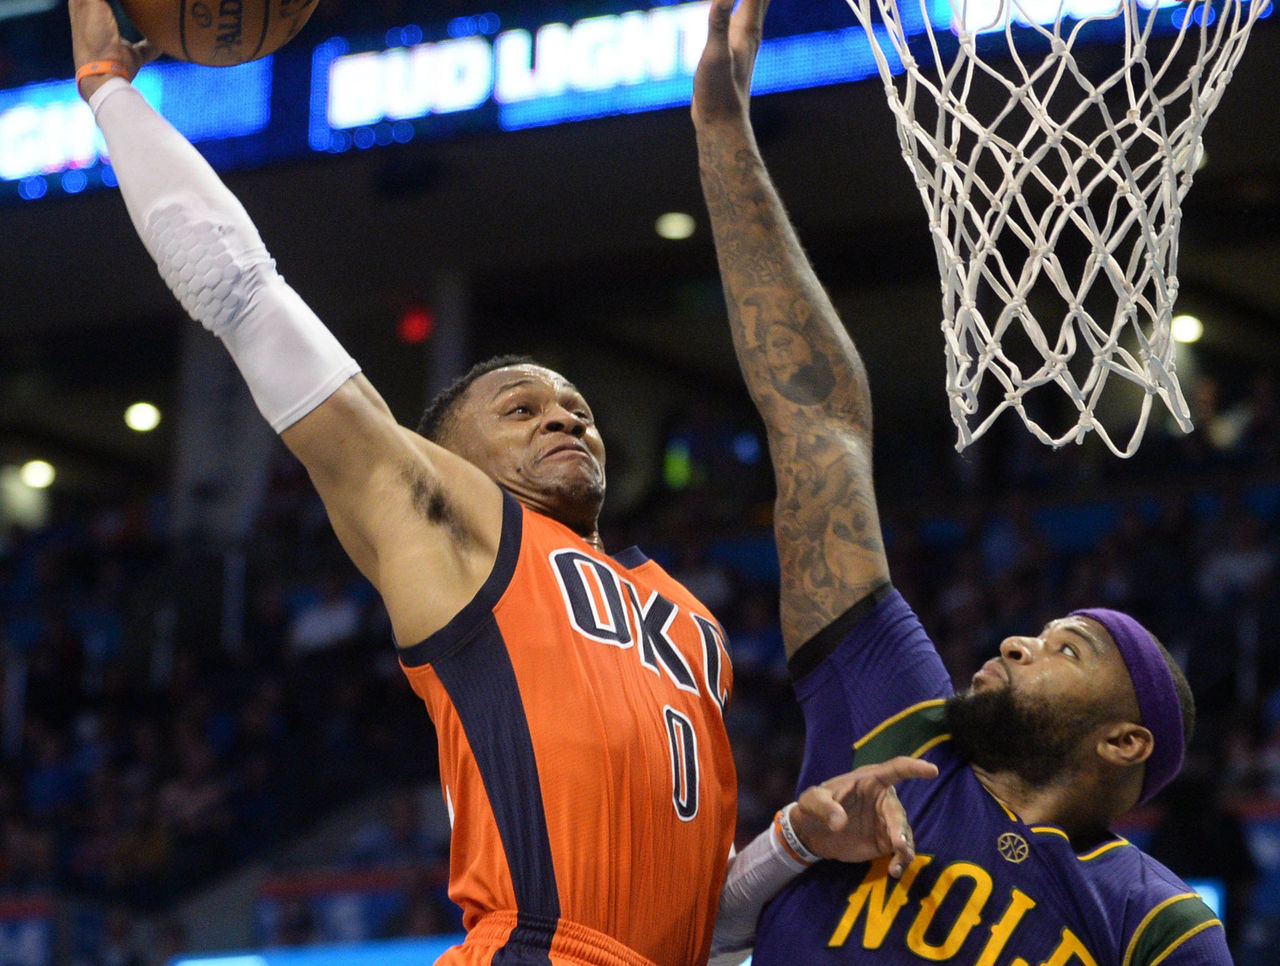 Cropped 2017 02 27t025808z 872693811 nocid rtrmadp 3 nba new orleans pelicans at oklahoma city thunder